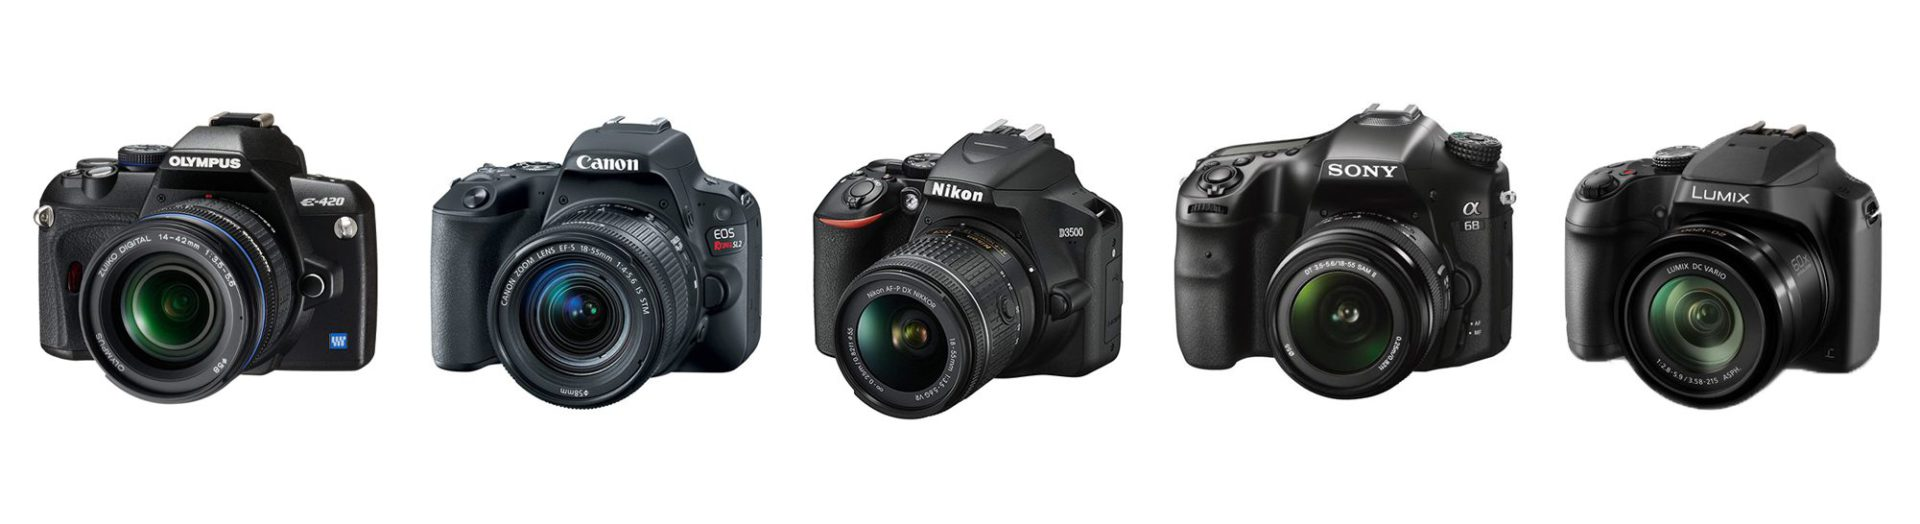 DSLR cameras from the five main brands - Olympus, Canon, Nikon, Sony, and Panasonic.